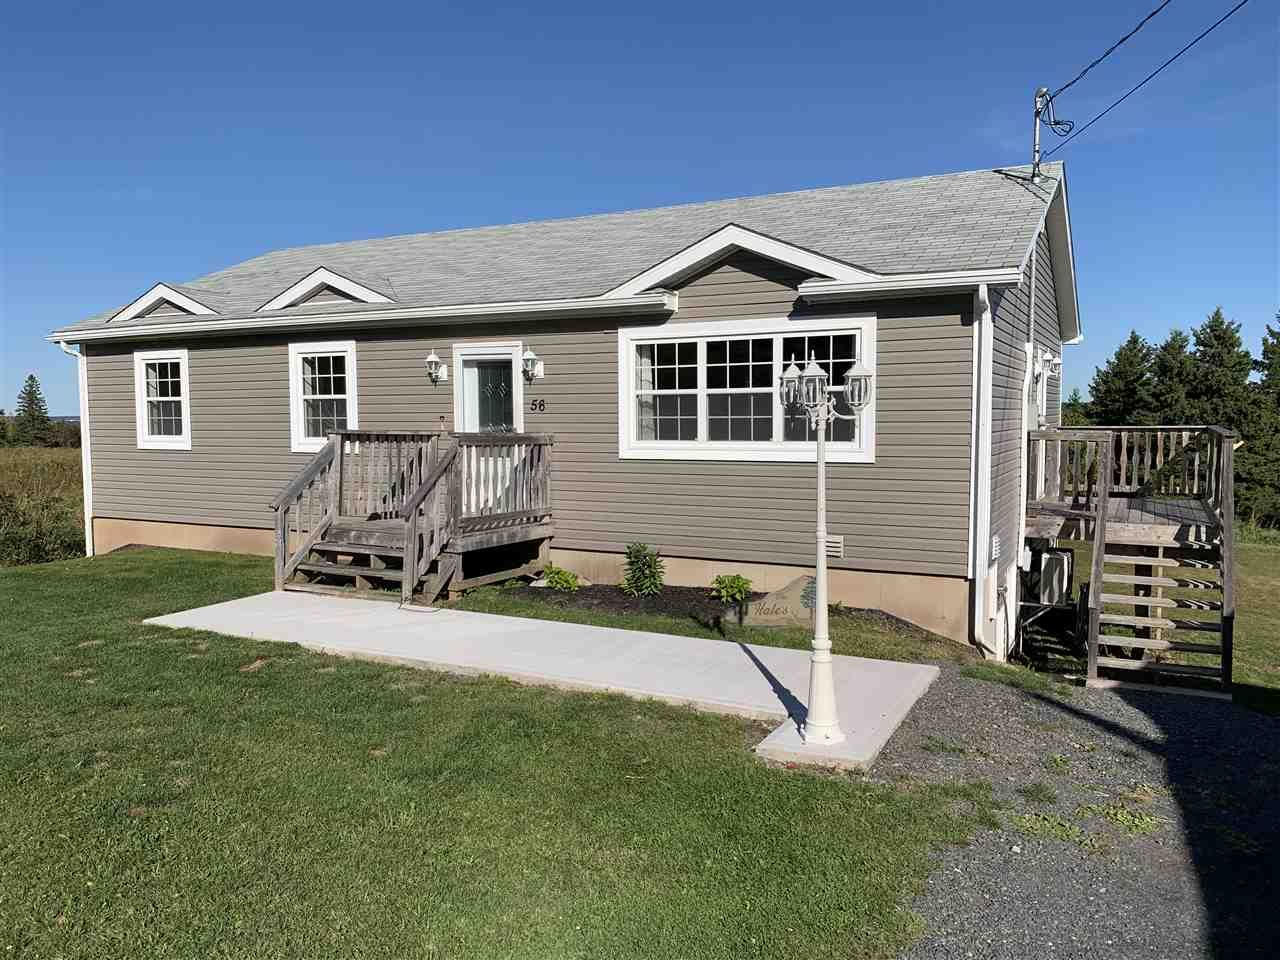 Main Photo: 56 Douglas Road in Alma: 108-Rural Pictou County Residential for sale (Northern Region)  : MLS®# 202020036